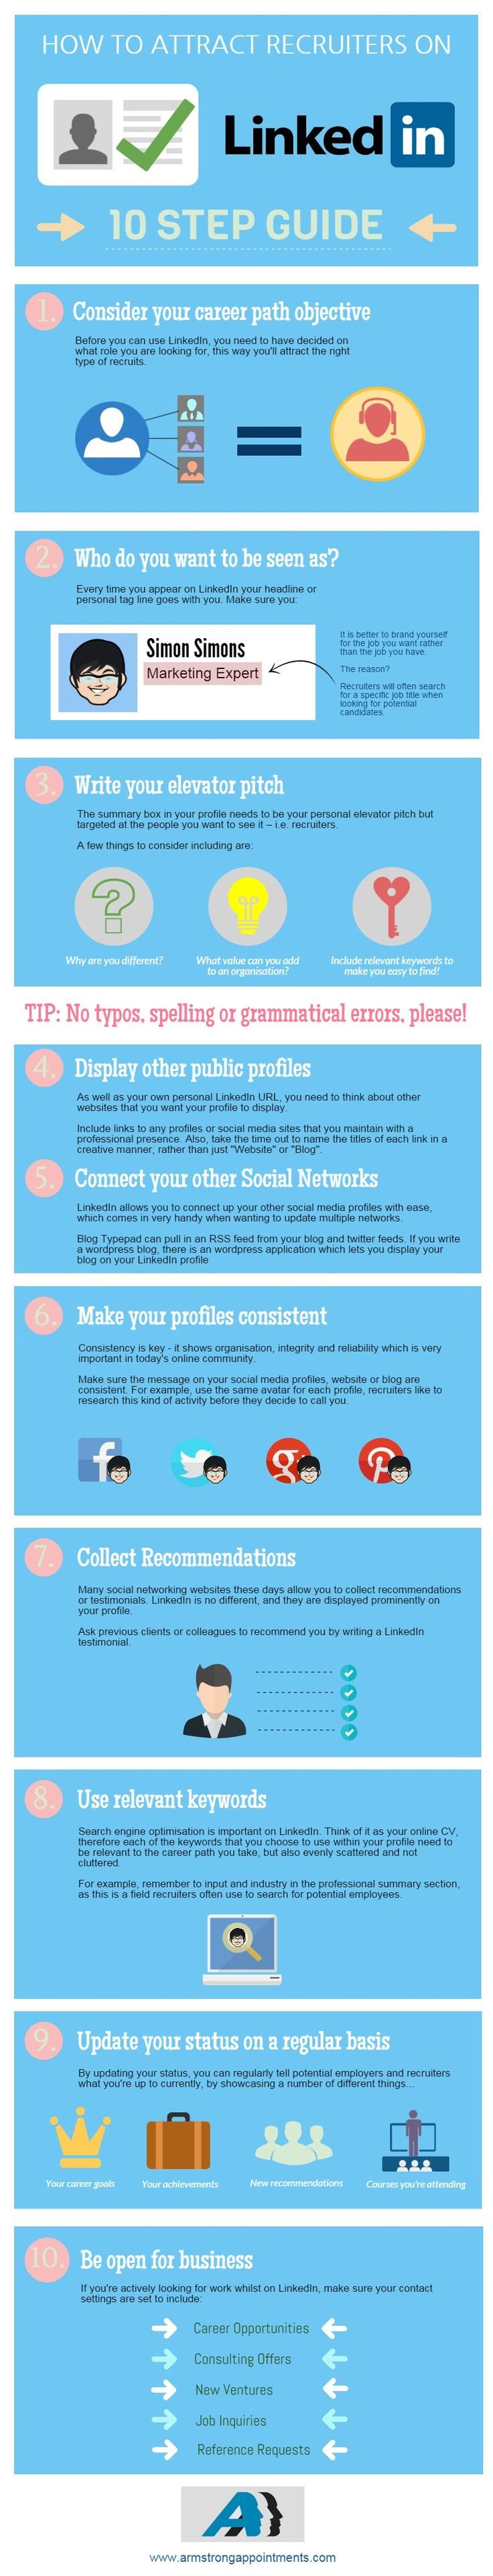 CareerEnlightenment.com: LinkedIn Profile Optimization [Infographic] - Take a look at this visual and gain valuable ways to enhance your LinkedIn profile and stand out from your competitors today.